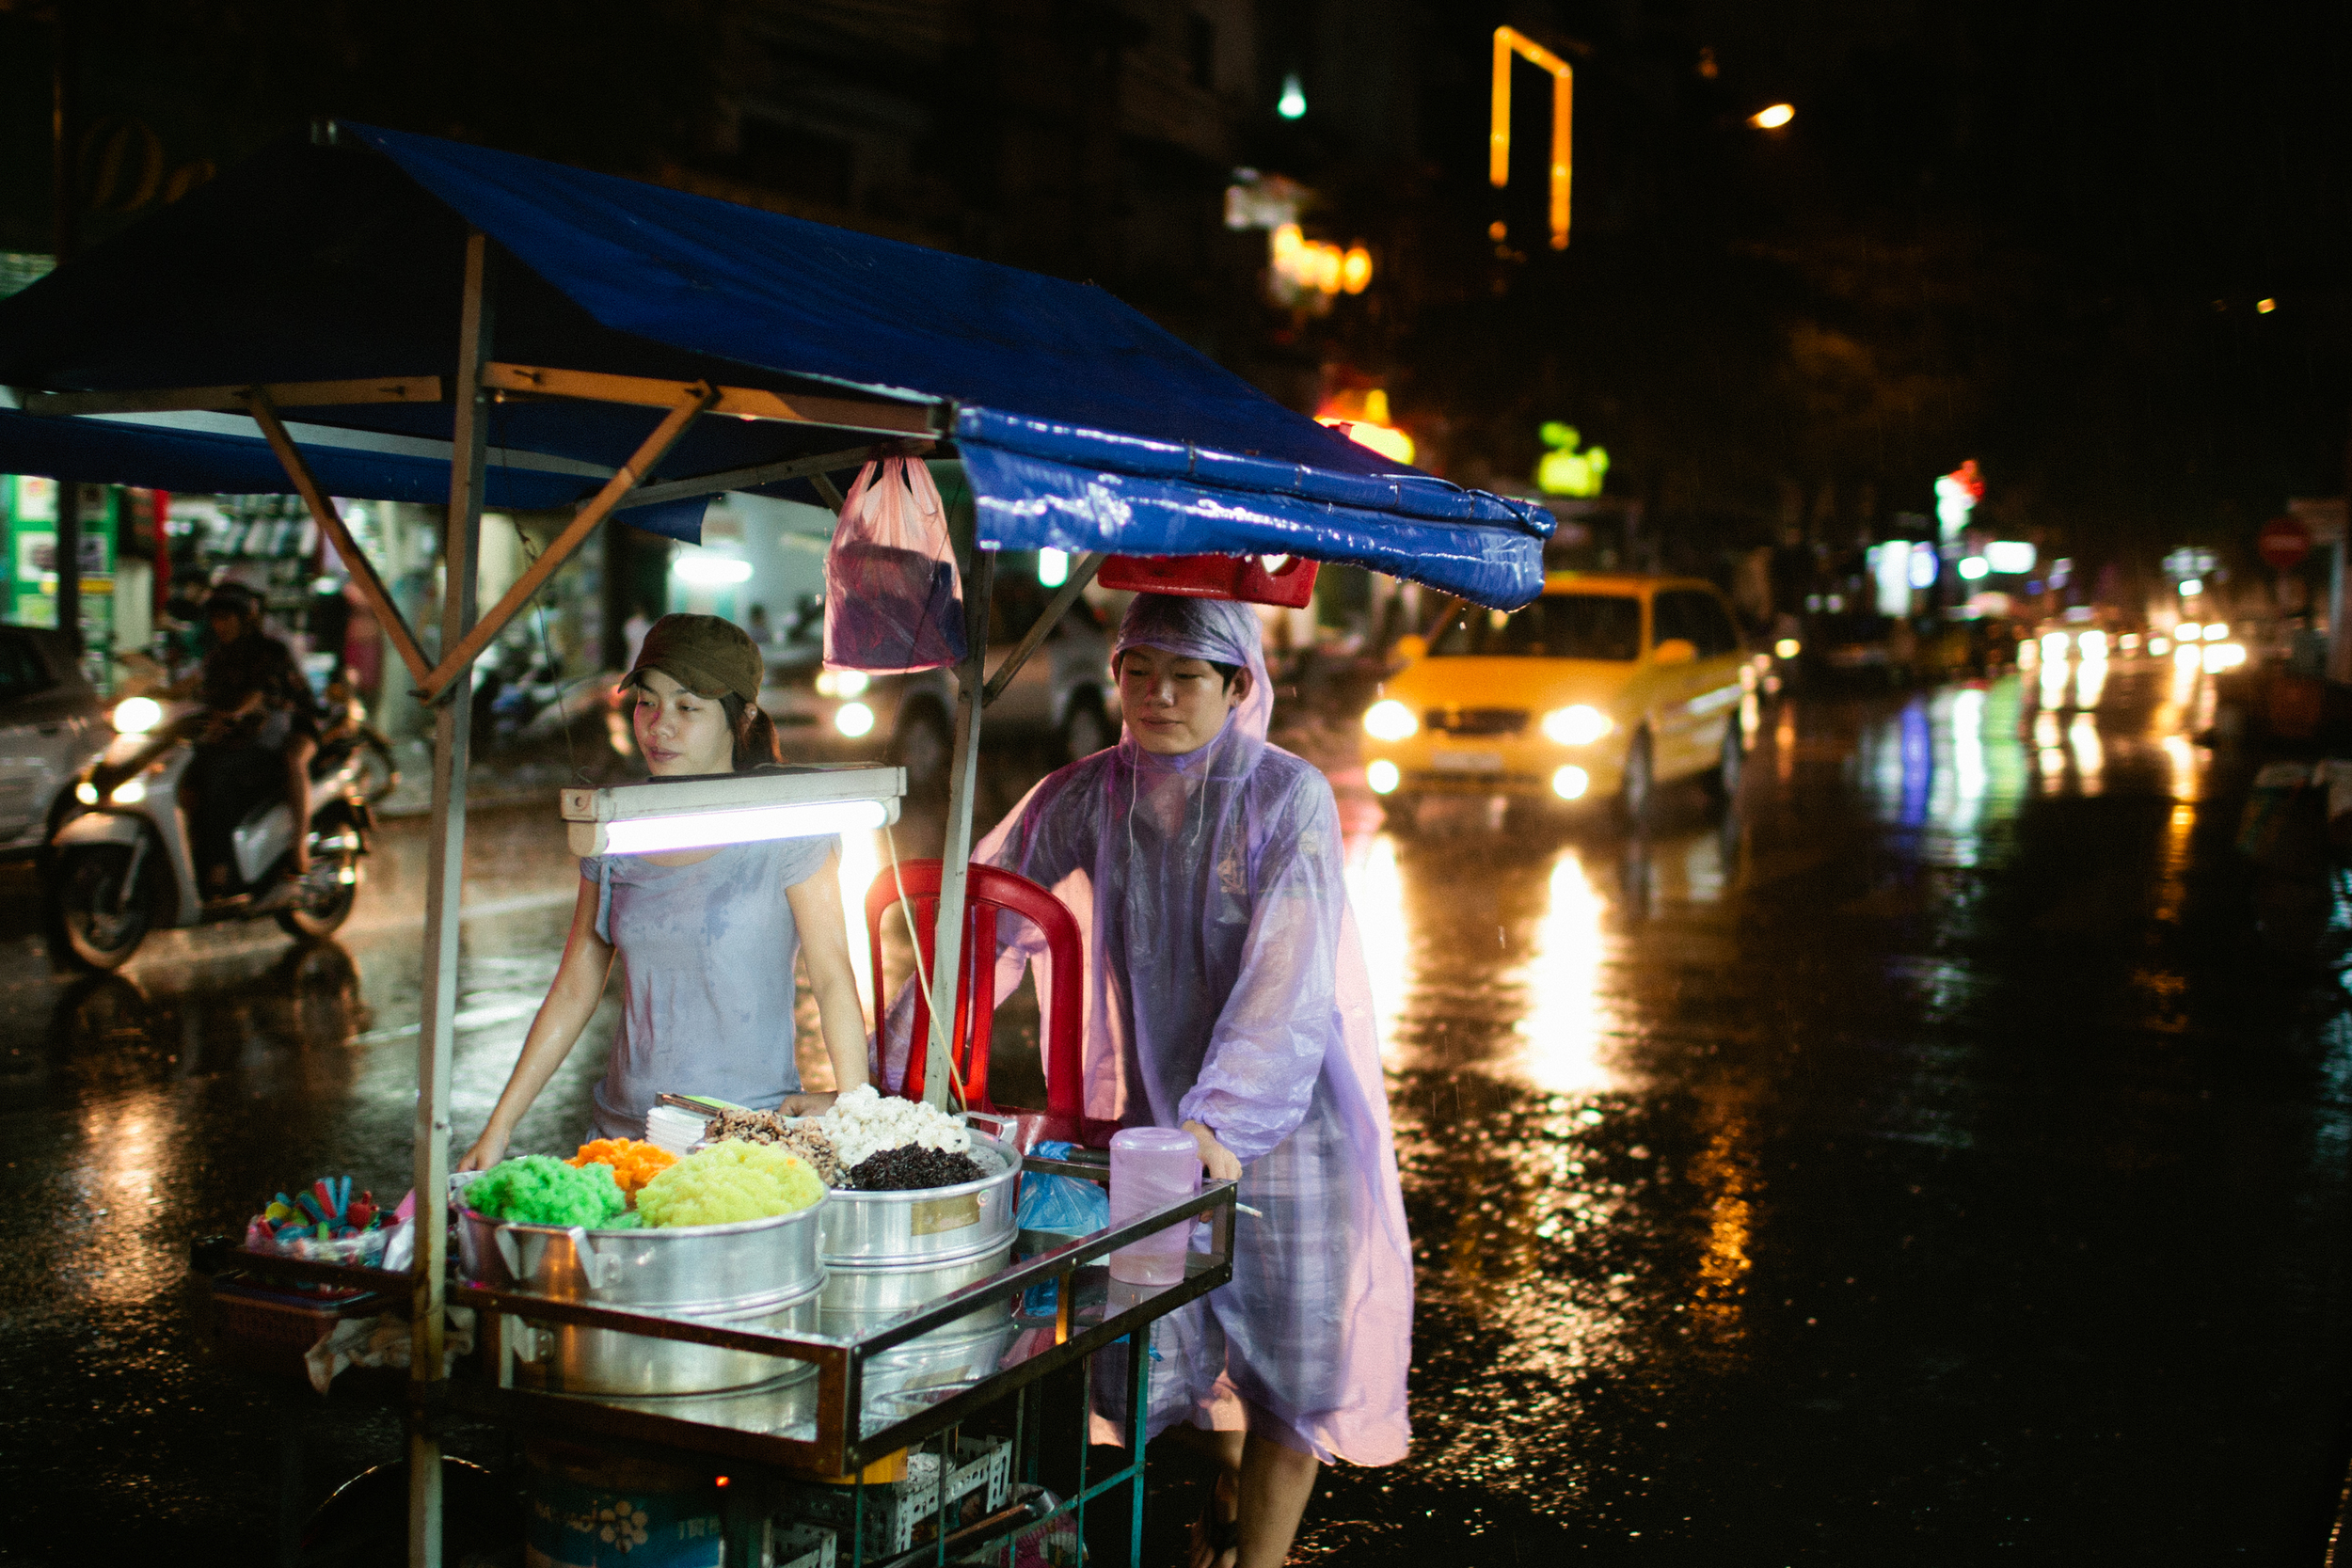 Out at a market in HCMC/Saigon one day when it started to rain.  Shot in 2011 with a Canon 1D3 and 35L.